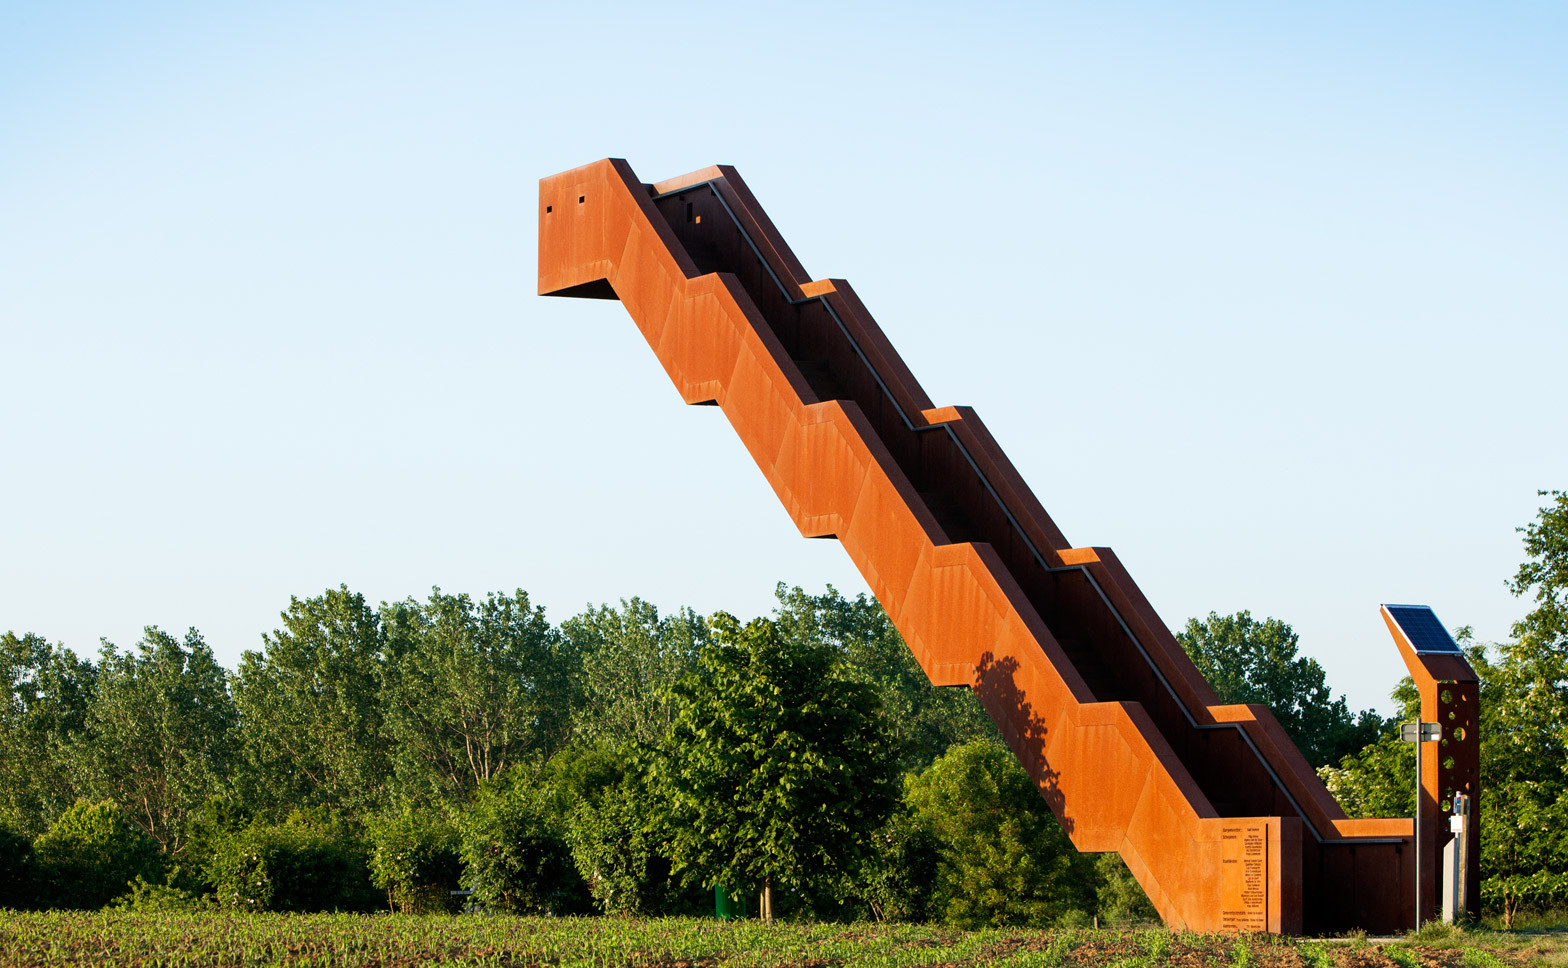 vlooyberg-tower-tieltwinge-close-to-bone-belgium-landscape-architecture-tower-stairway-weathered-steel_dezeen_1568_2